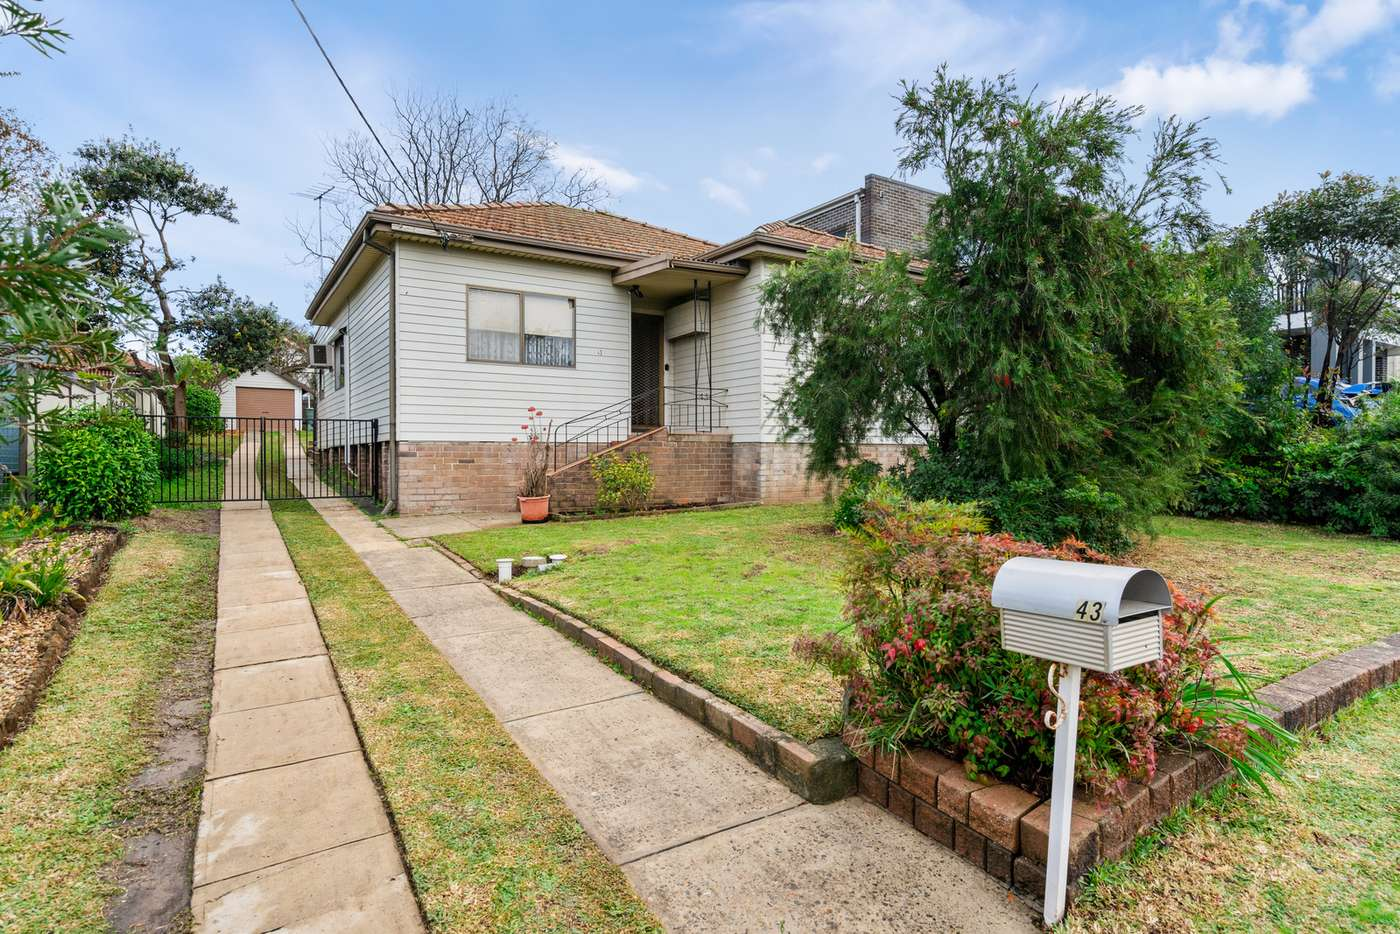 Main view of Homely house listing, 43 William Street, Holroyd NSW 2142